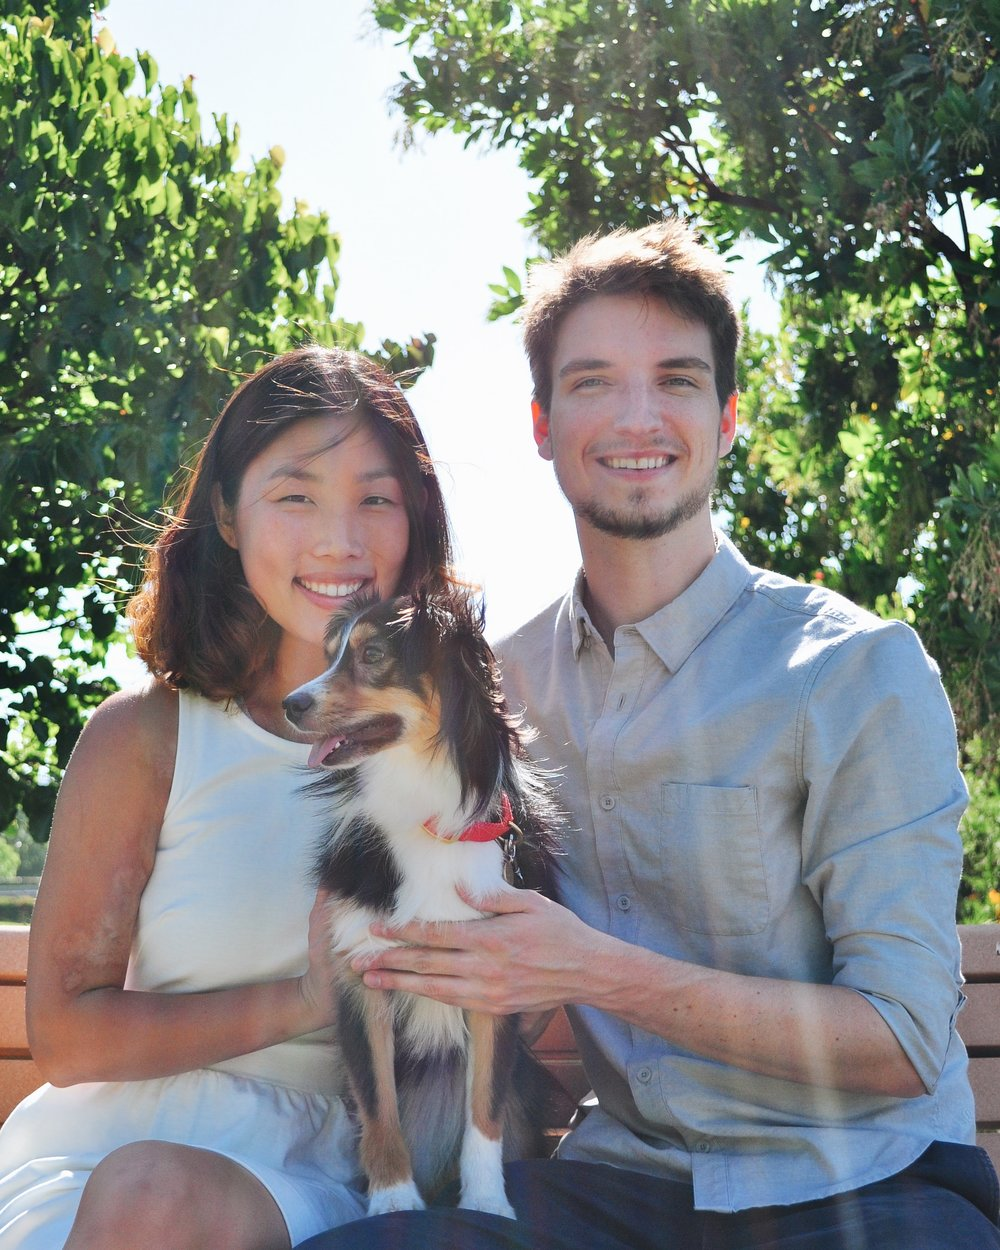 CUPERTINO, CA2015 - With the addition of Mia, a Toy Australian Shepherd, we began establishing our small family in the Bay Area.